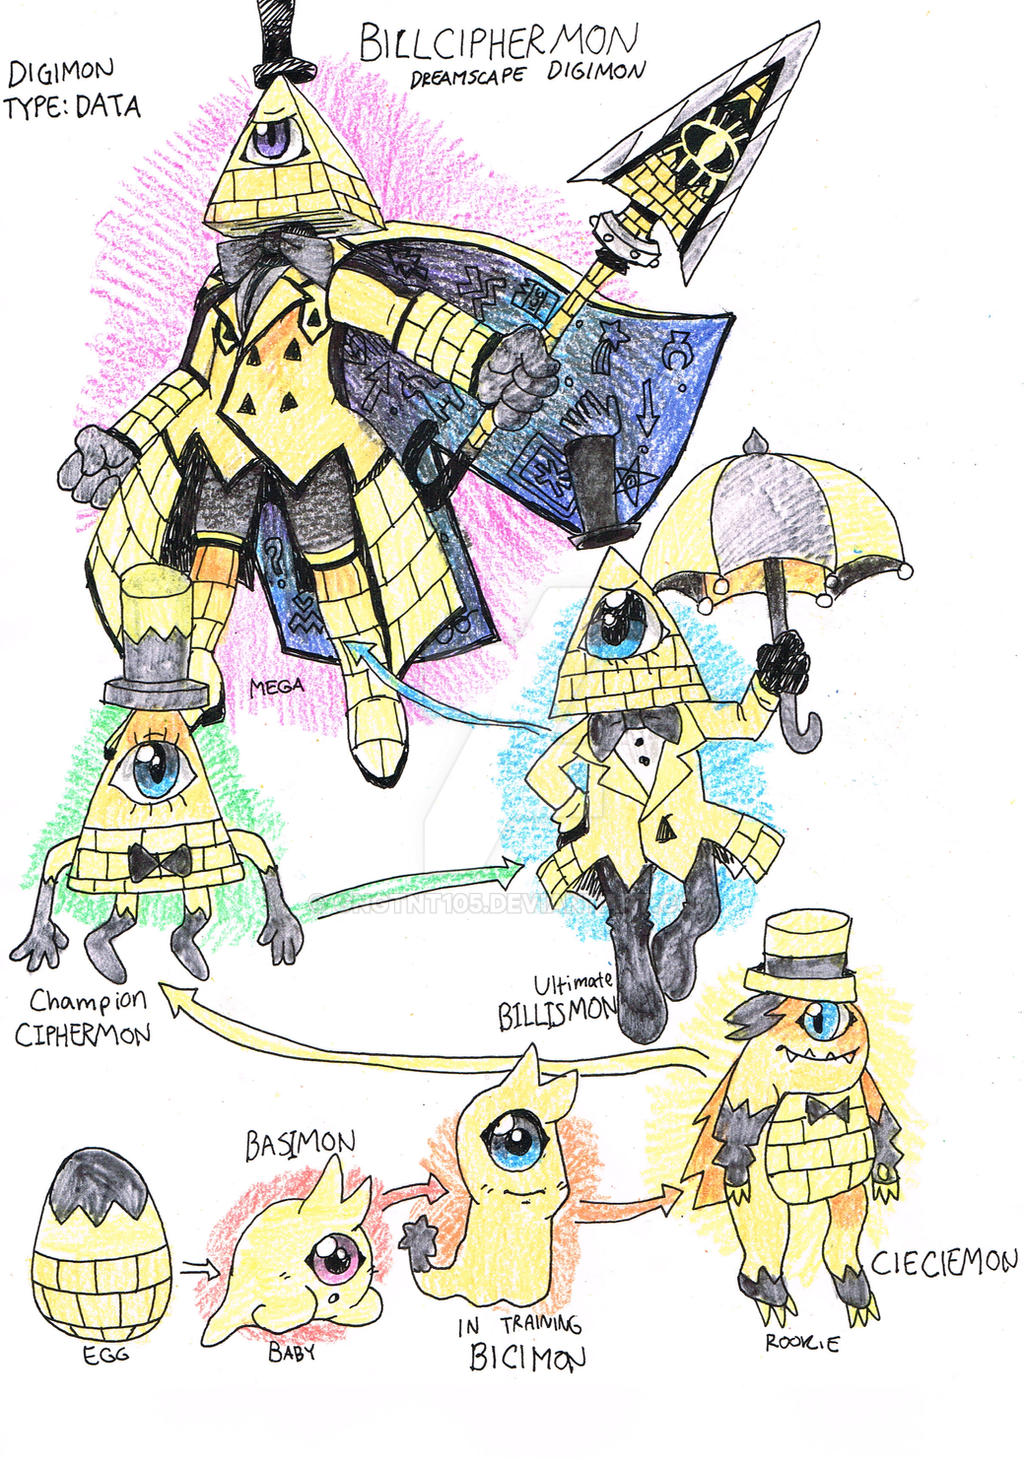 If Bill Cipher Was a Digimon by GNGTNT105 on DeviantArt